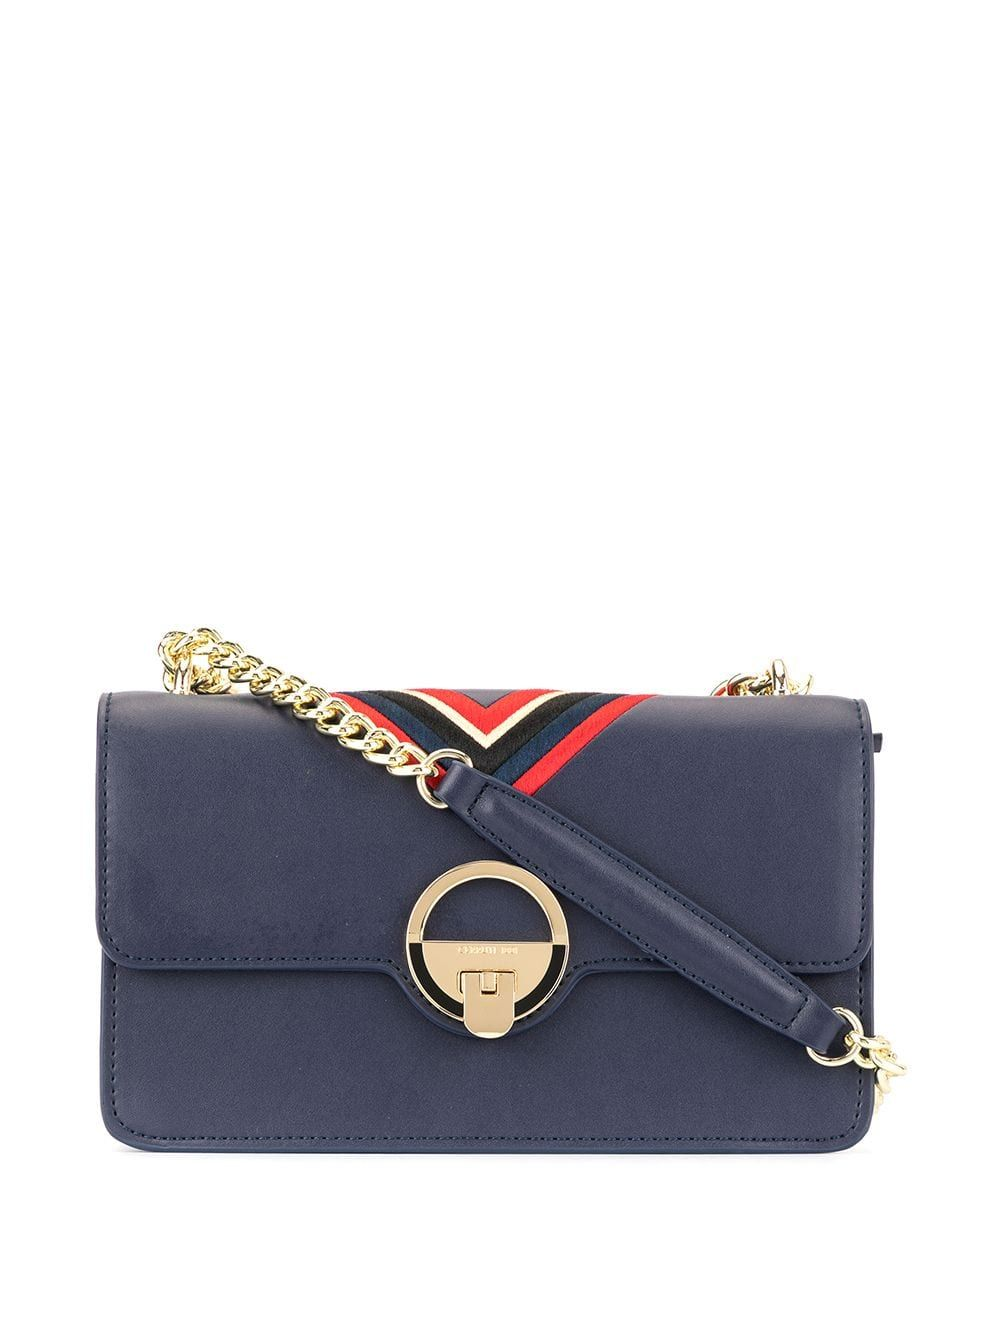 3b7ef73fe77 Cerruti 1881 small cross body bag - Blue in 2019 | Products | Small ...